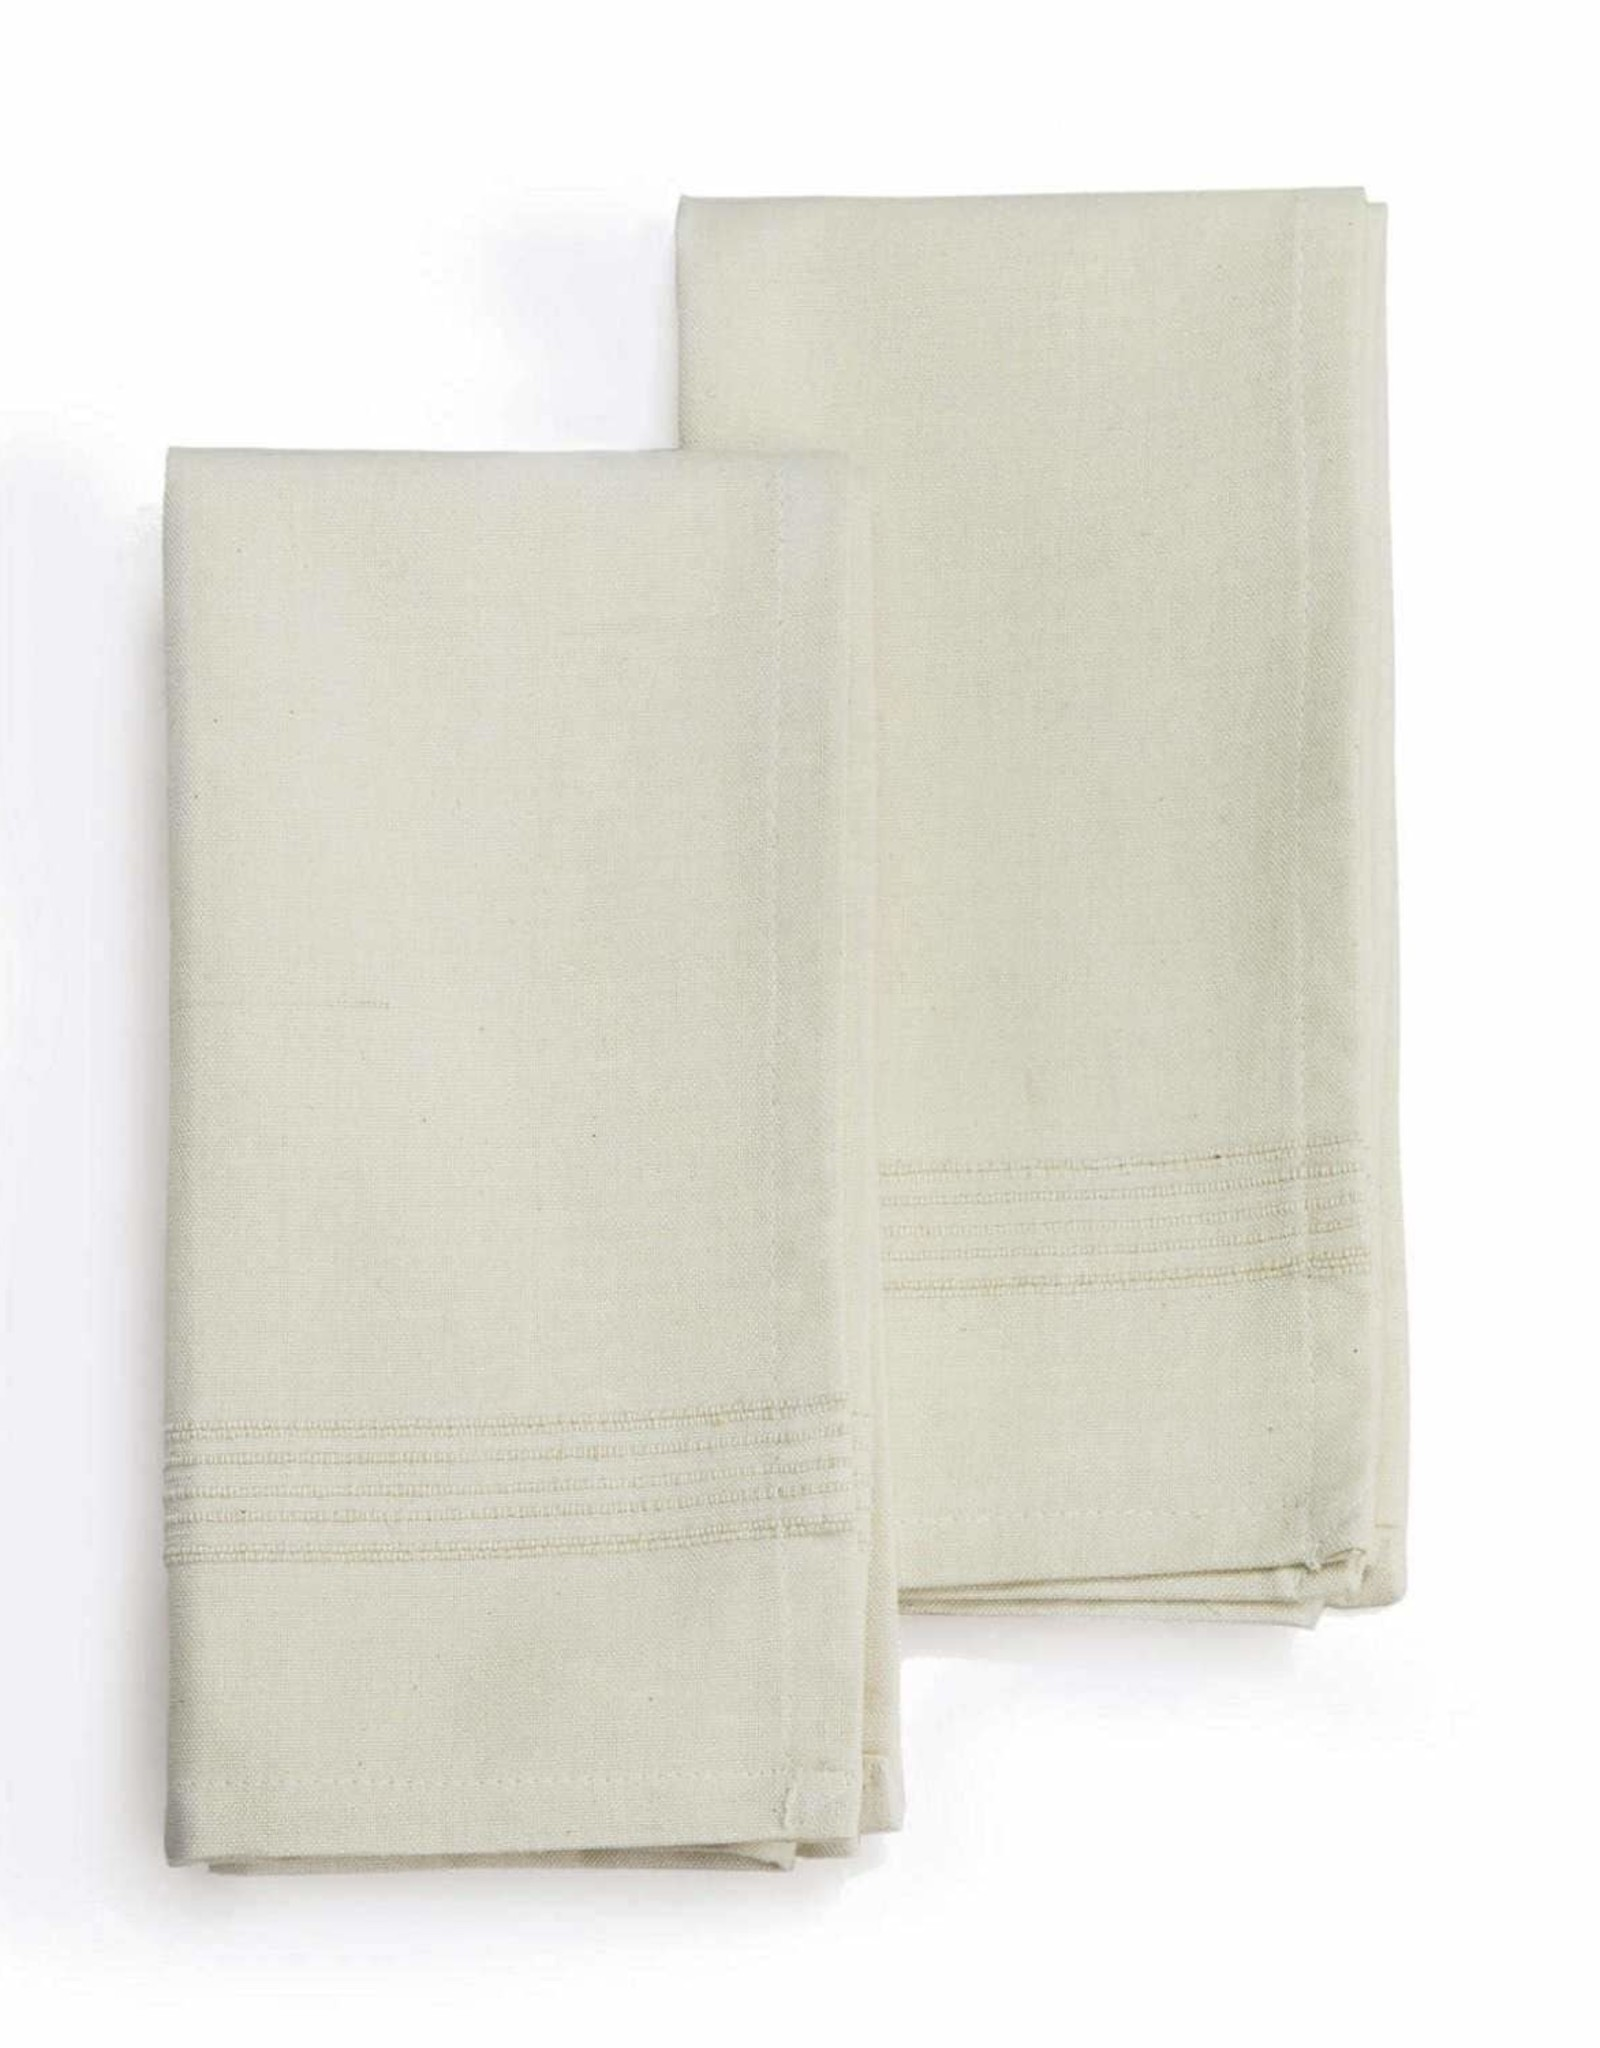 India, 20 x 20 Cotton Napkins, Set of Four Whipped Cream